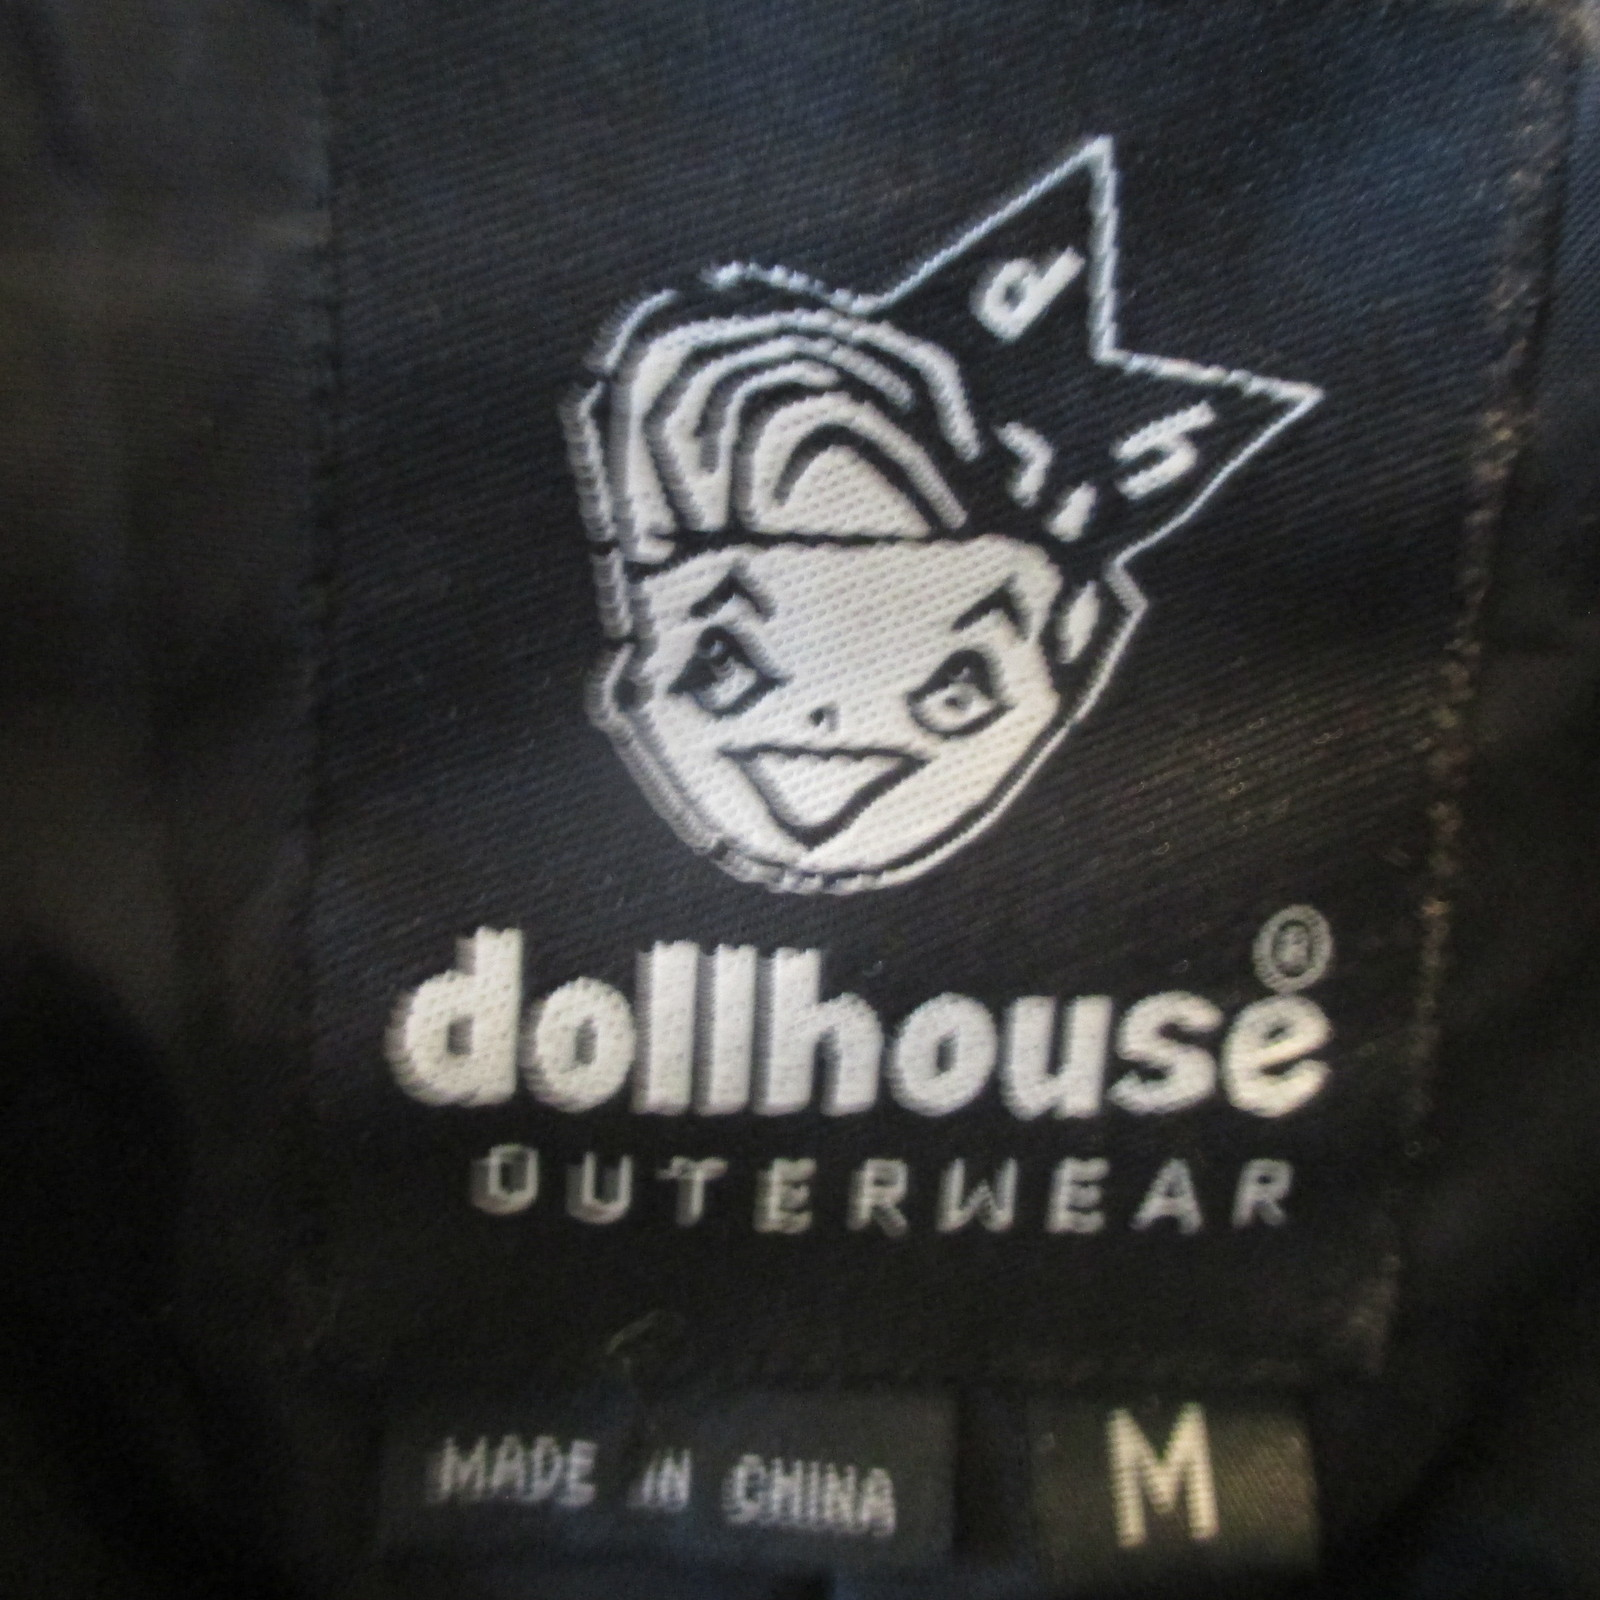 Dollhouse Faux Leather Reptile Print Jacket Size M